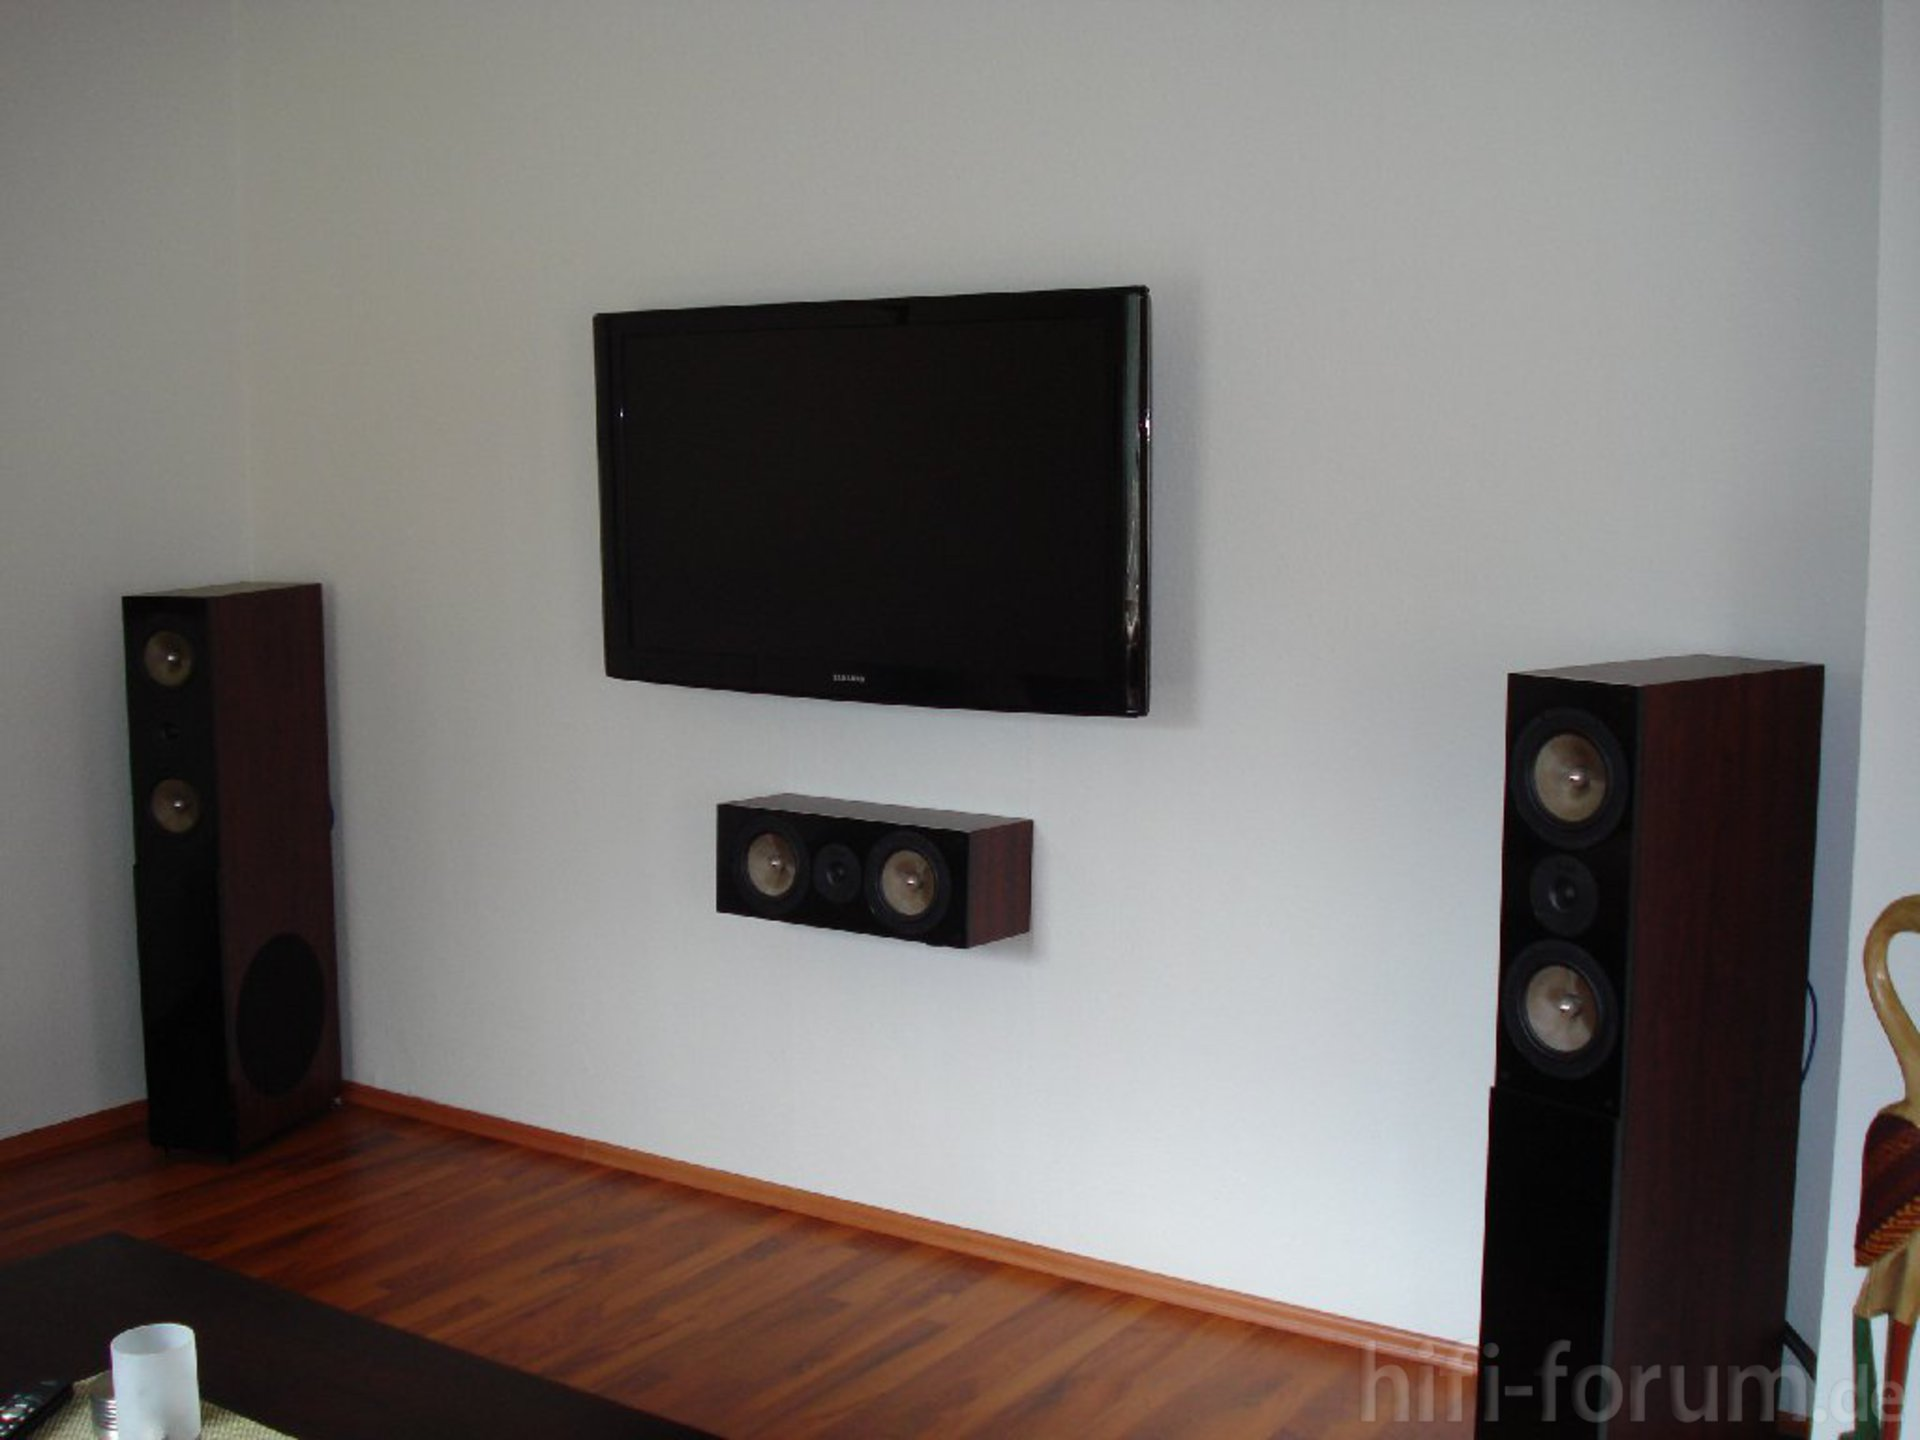 Tv An Die Wand Die Tv Wand | Heimkino, Surround, Wand | Hifi-forum.de ...